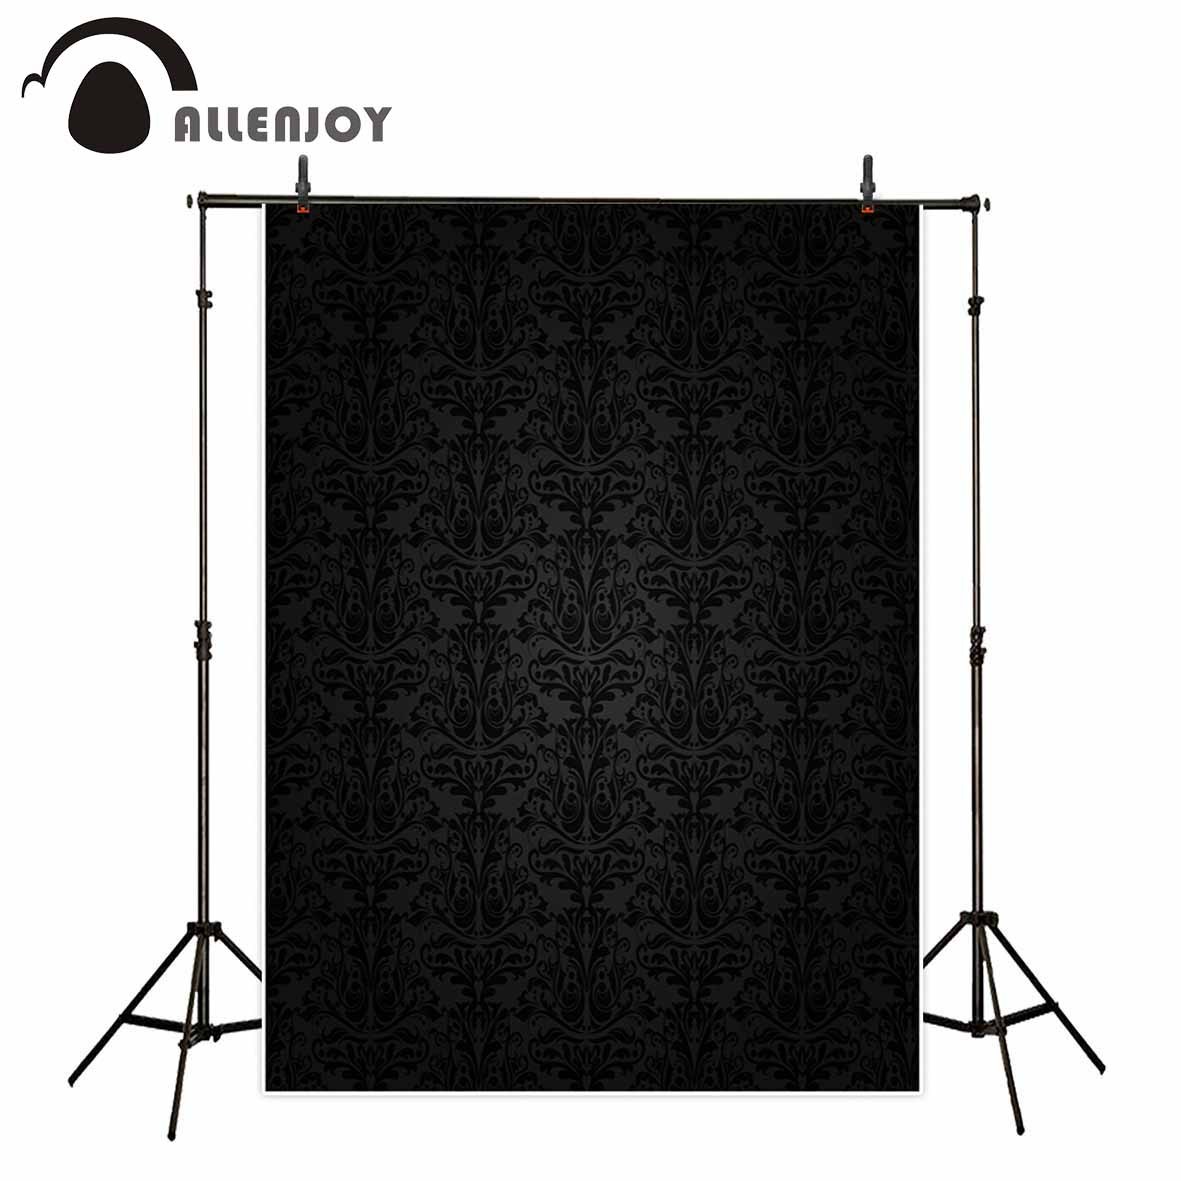 Allenjoy photography background Black solemn damask decoration wallpaper professional festival backdrop for photographic studio